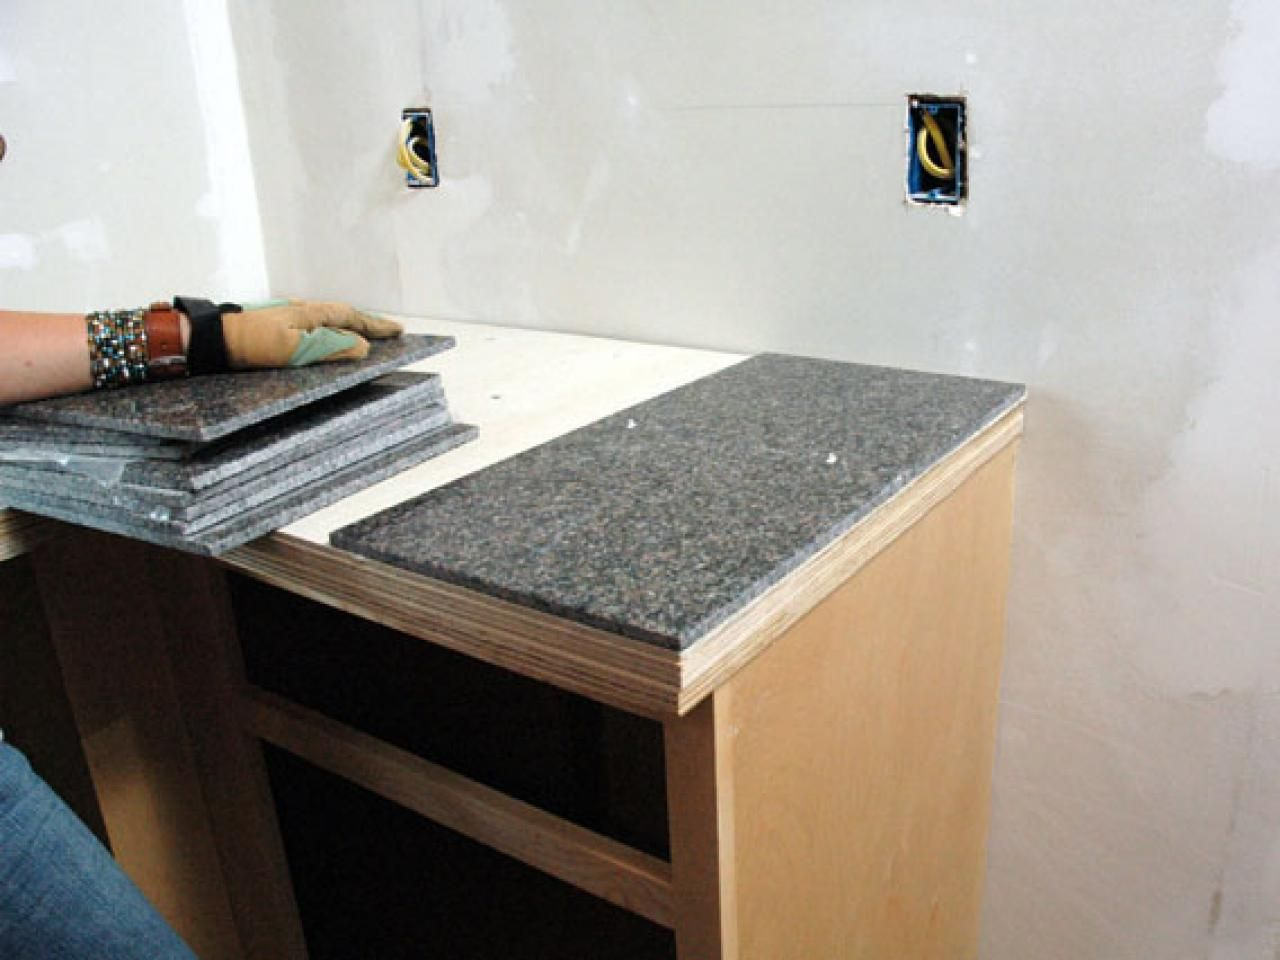 Cheap Alternatives To Granite Countertops How To Install A Granite Tile Kitchen Countertop In 2019